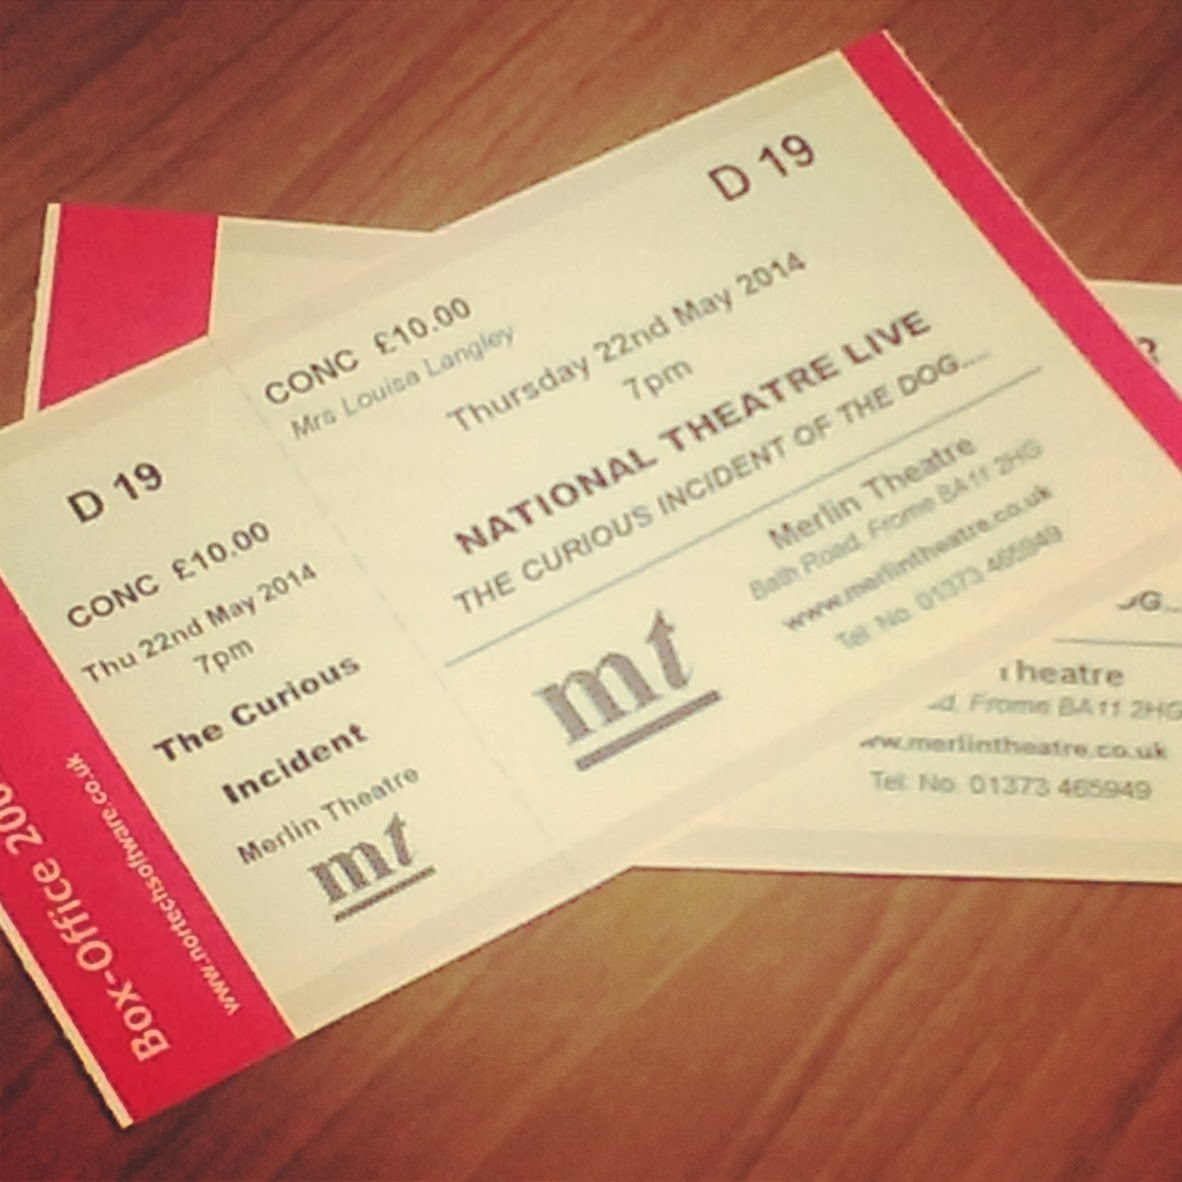 Tickets for the National Theatre Live screening